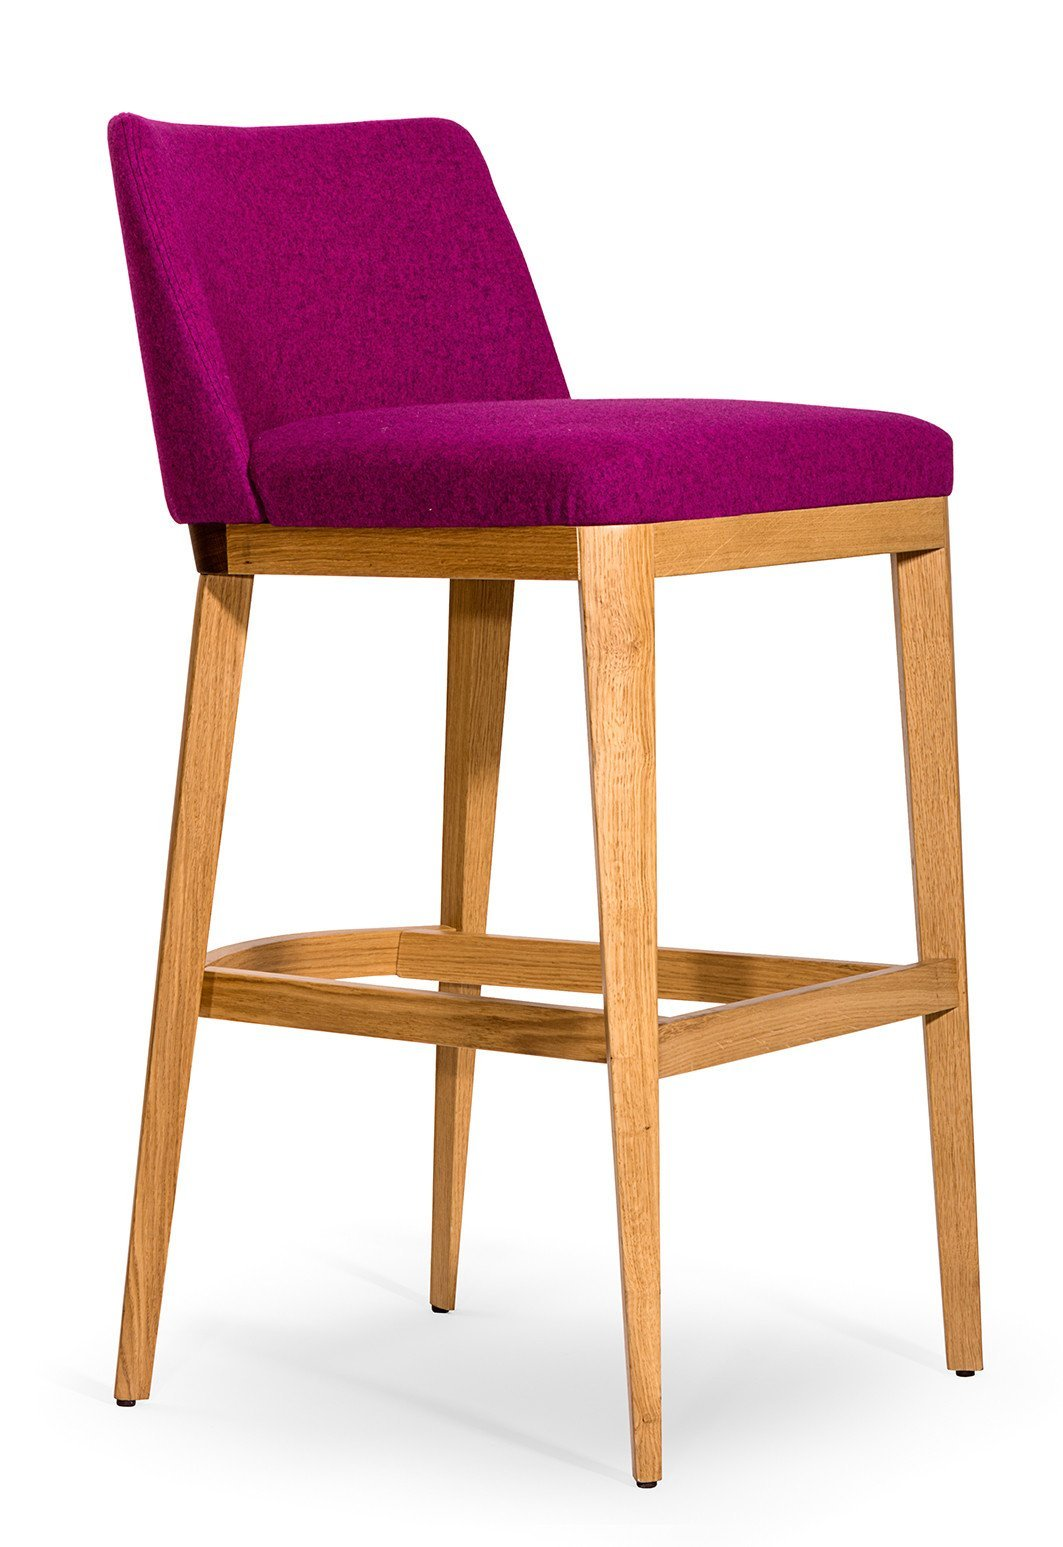 Kate C691 High Stool-EsseTi Design-Contract Furniture Store